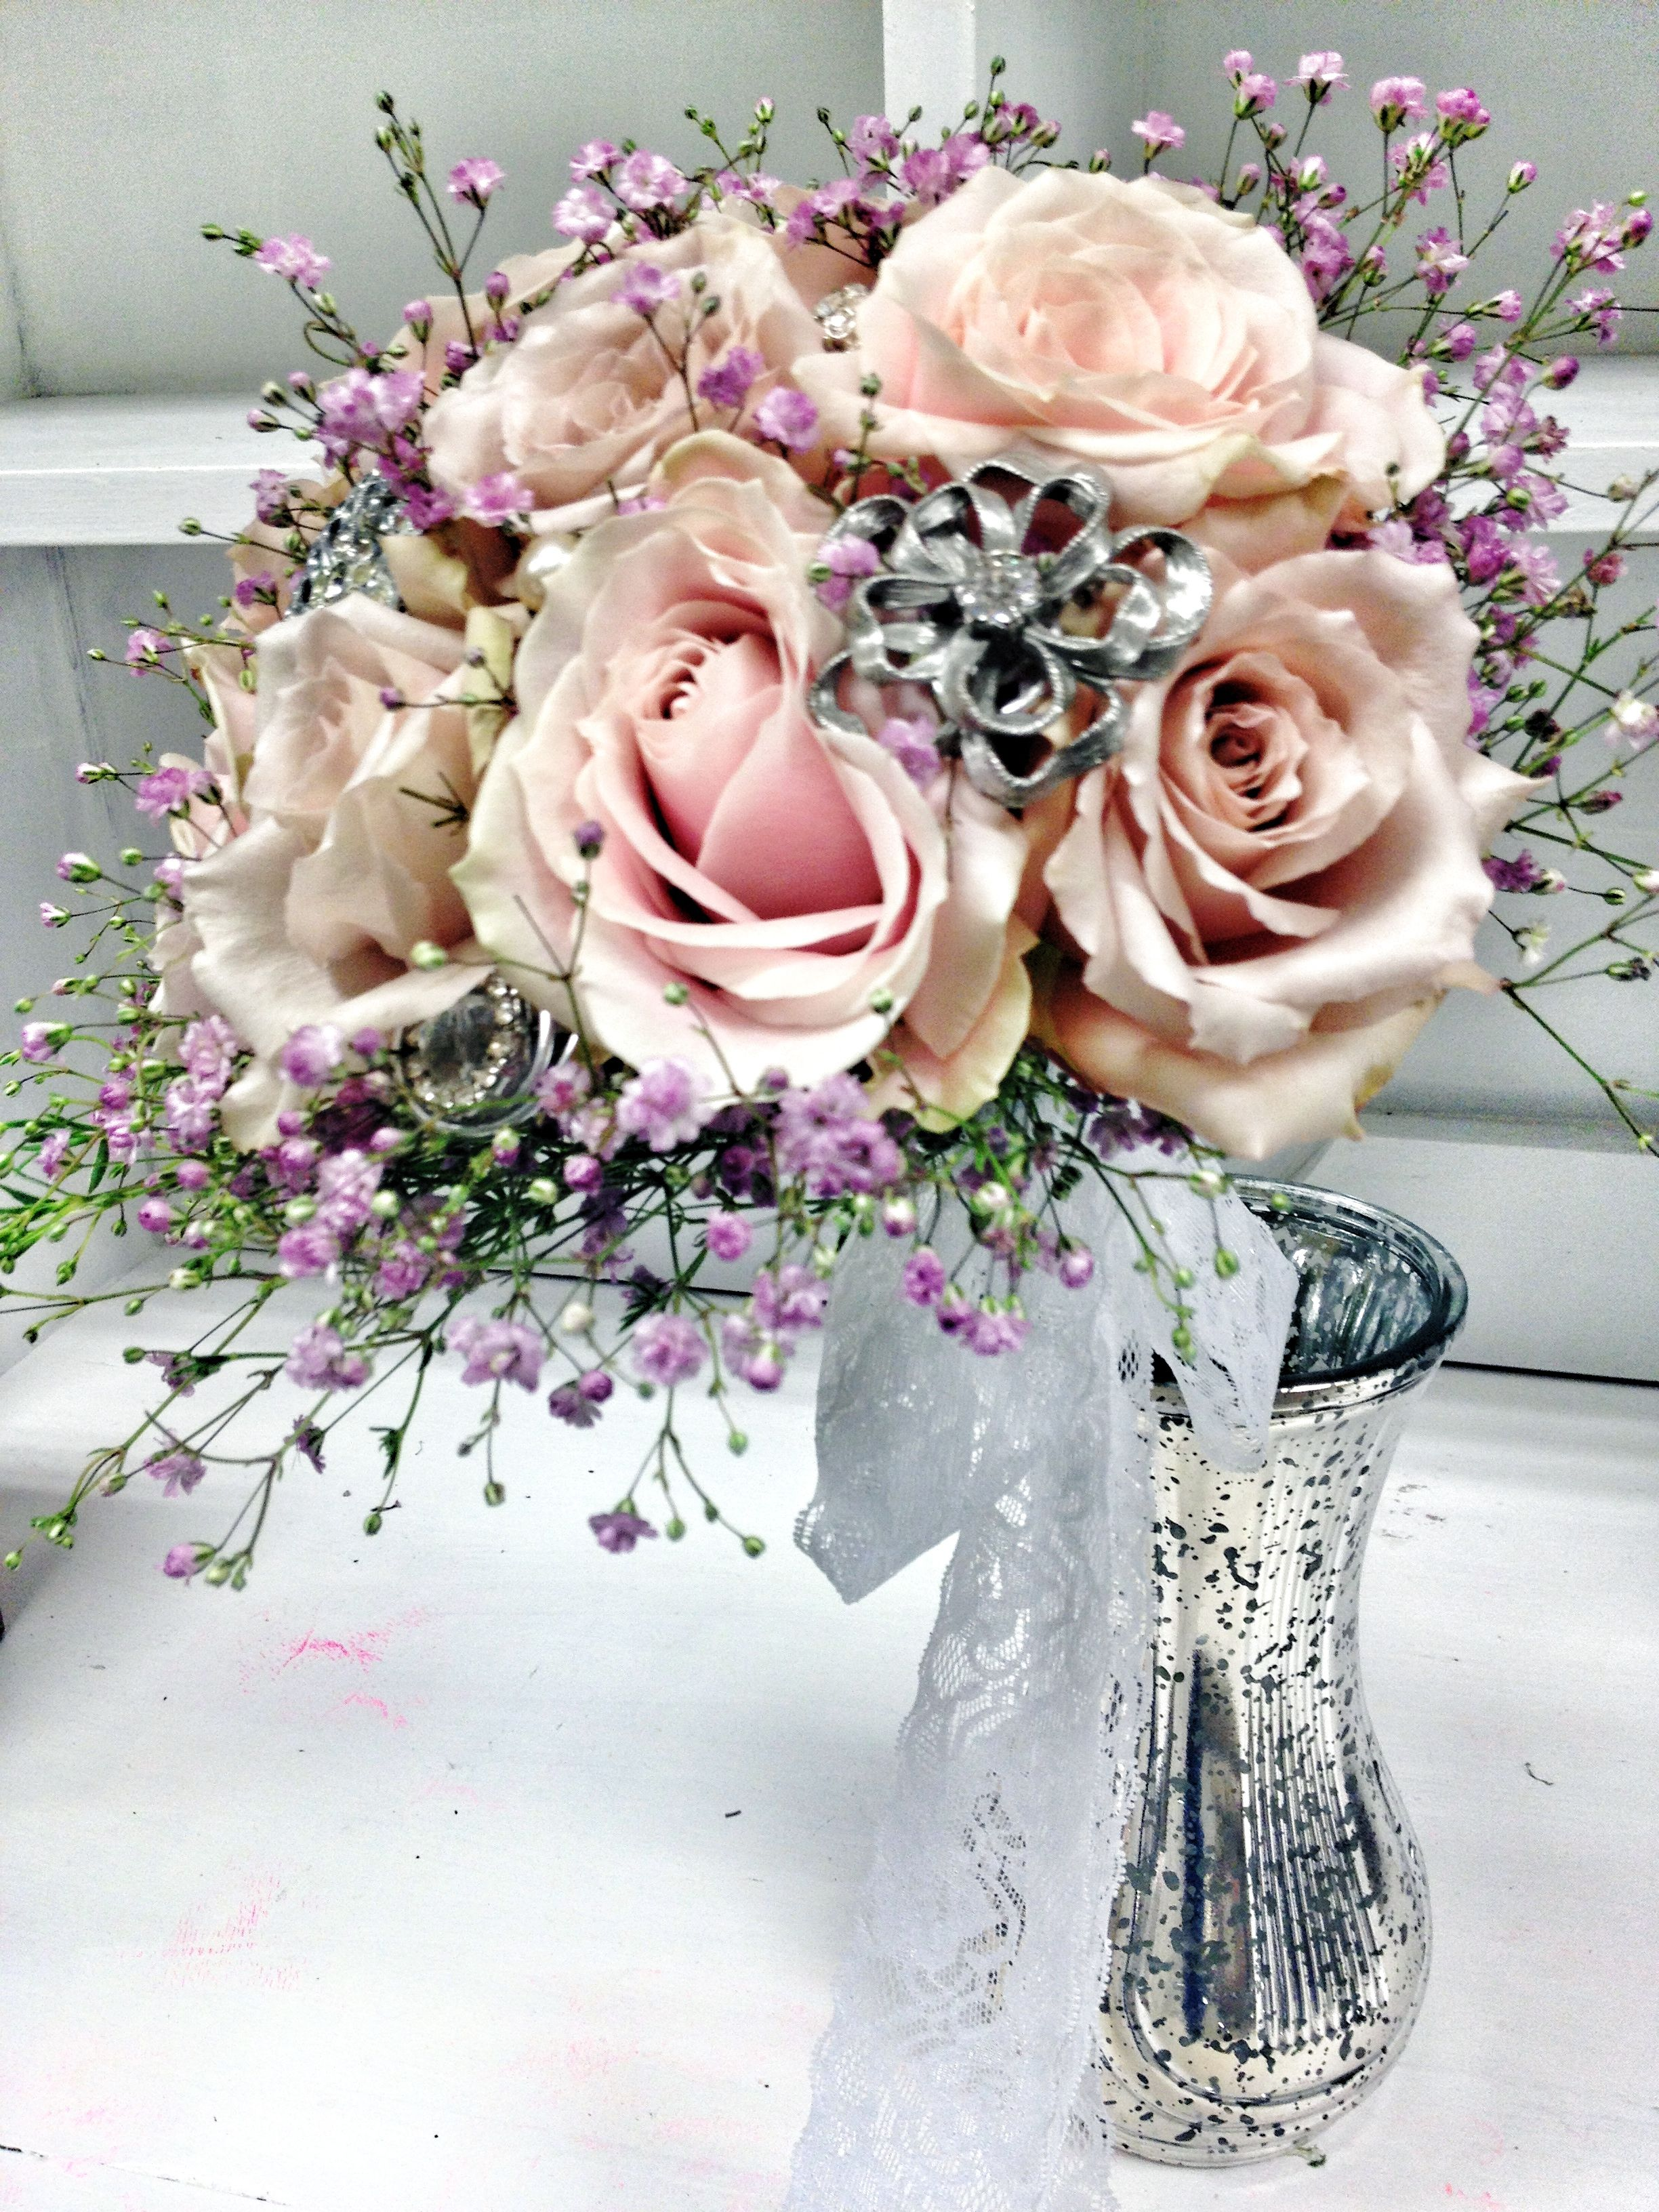 Quicksand And Sweet Avalanche Roses Surrounded By Pink Babys Breath